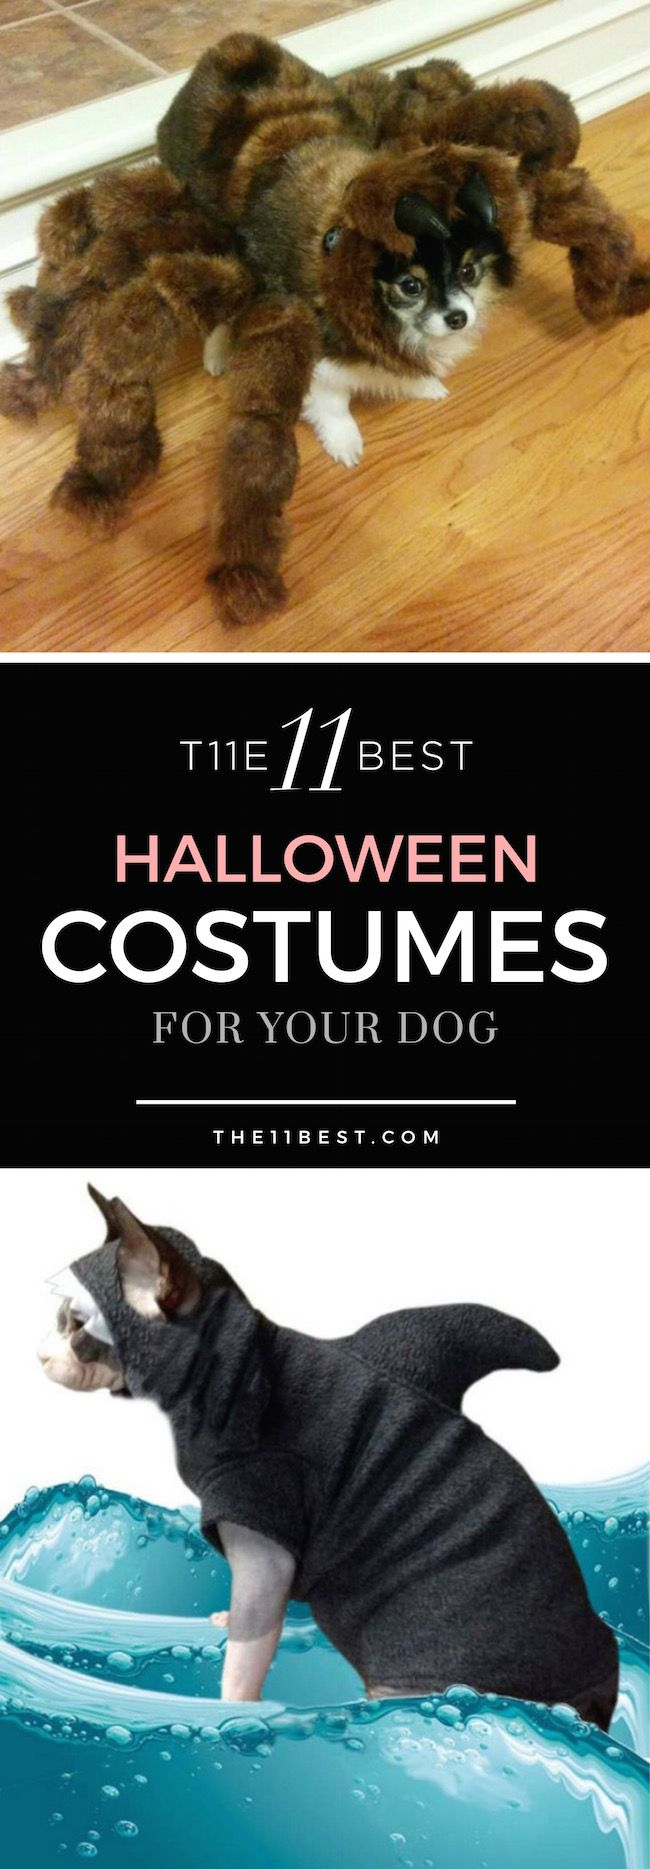 The 11 Best Halloween Costumes for Your Dog